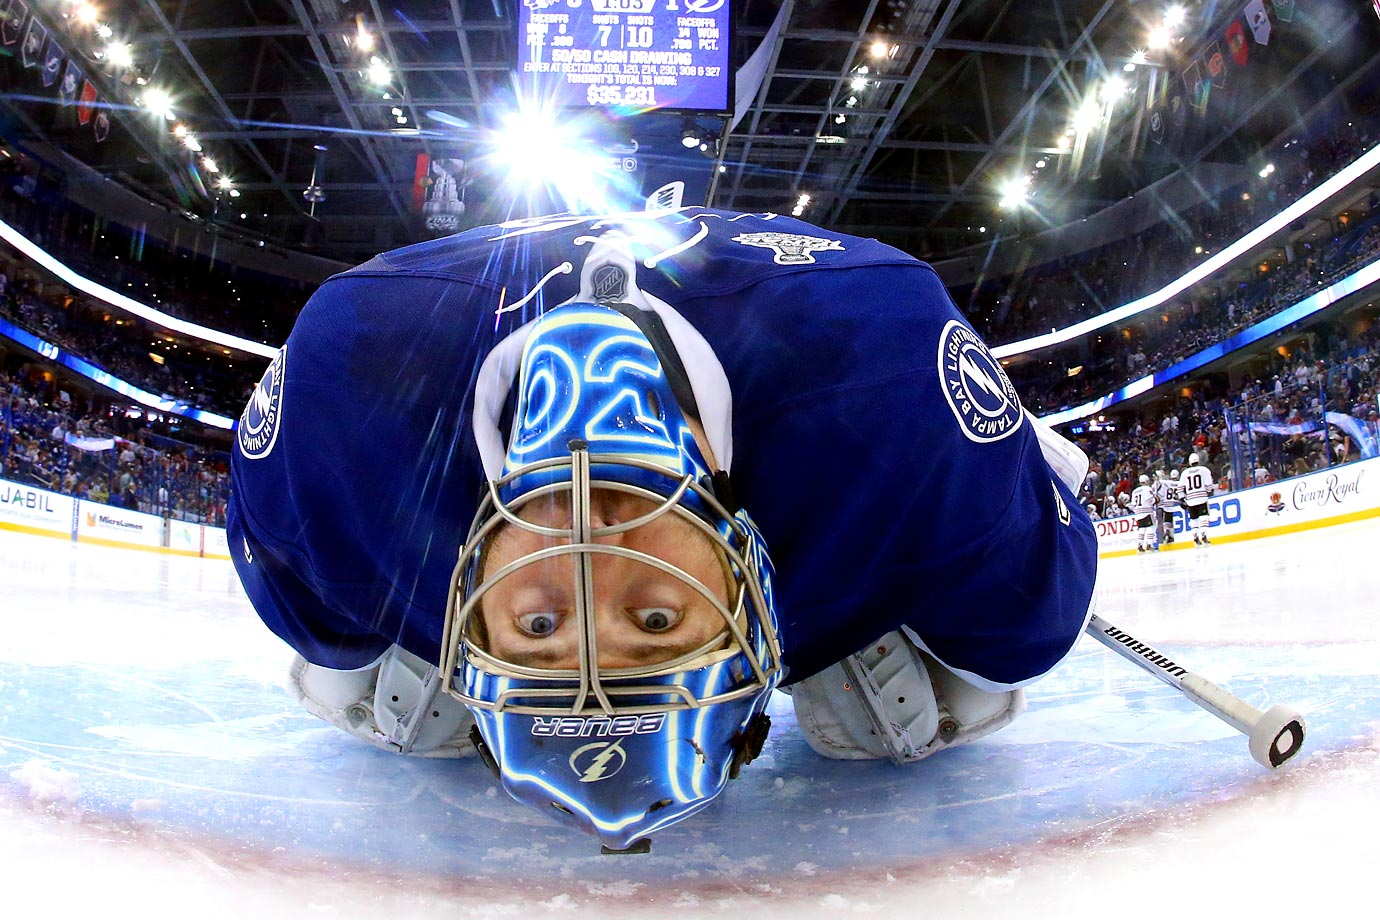 Tampa Bay Lightning goalie Ben Bishop stretches between periods during Game 1 of the NHL Finals on June 3 at Amalie Arena in Tampa.